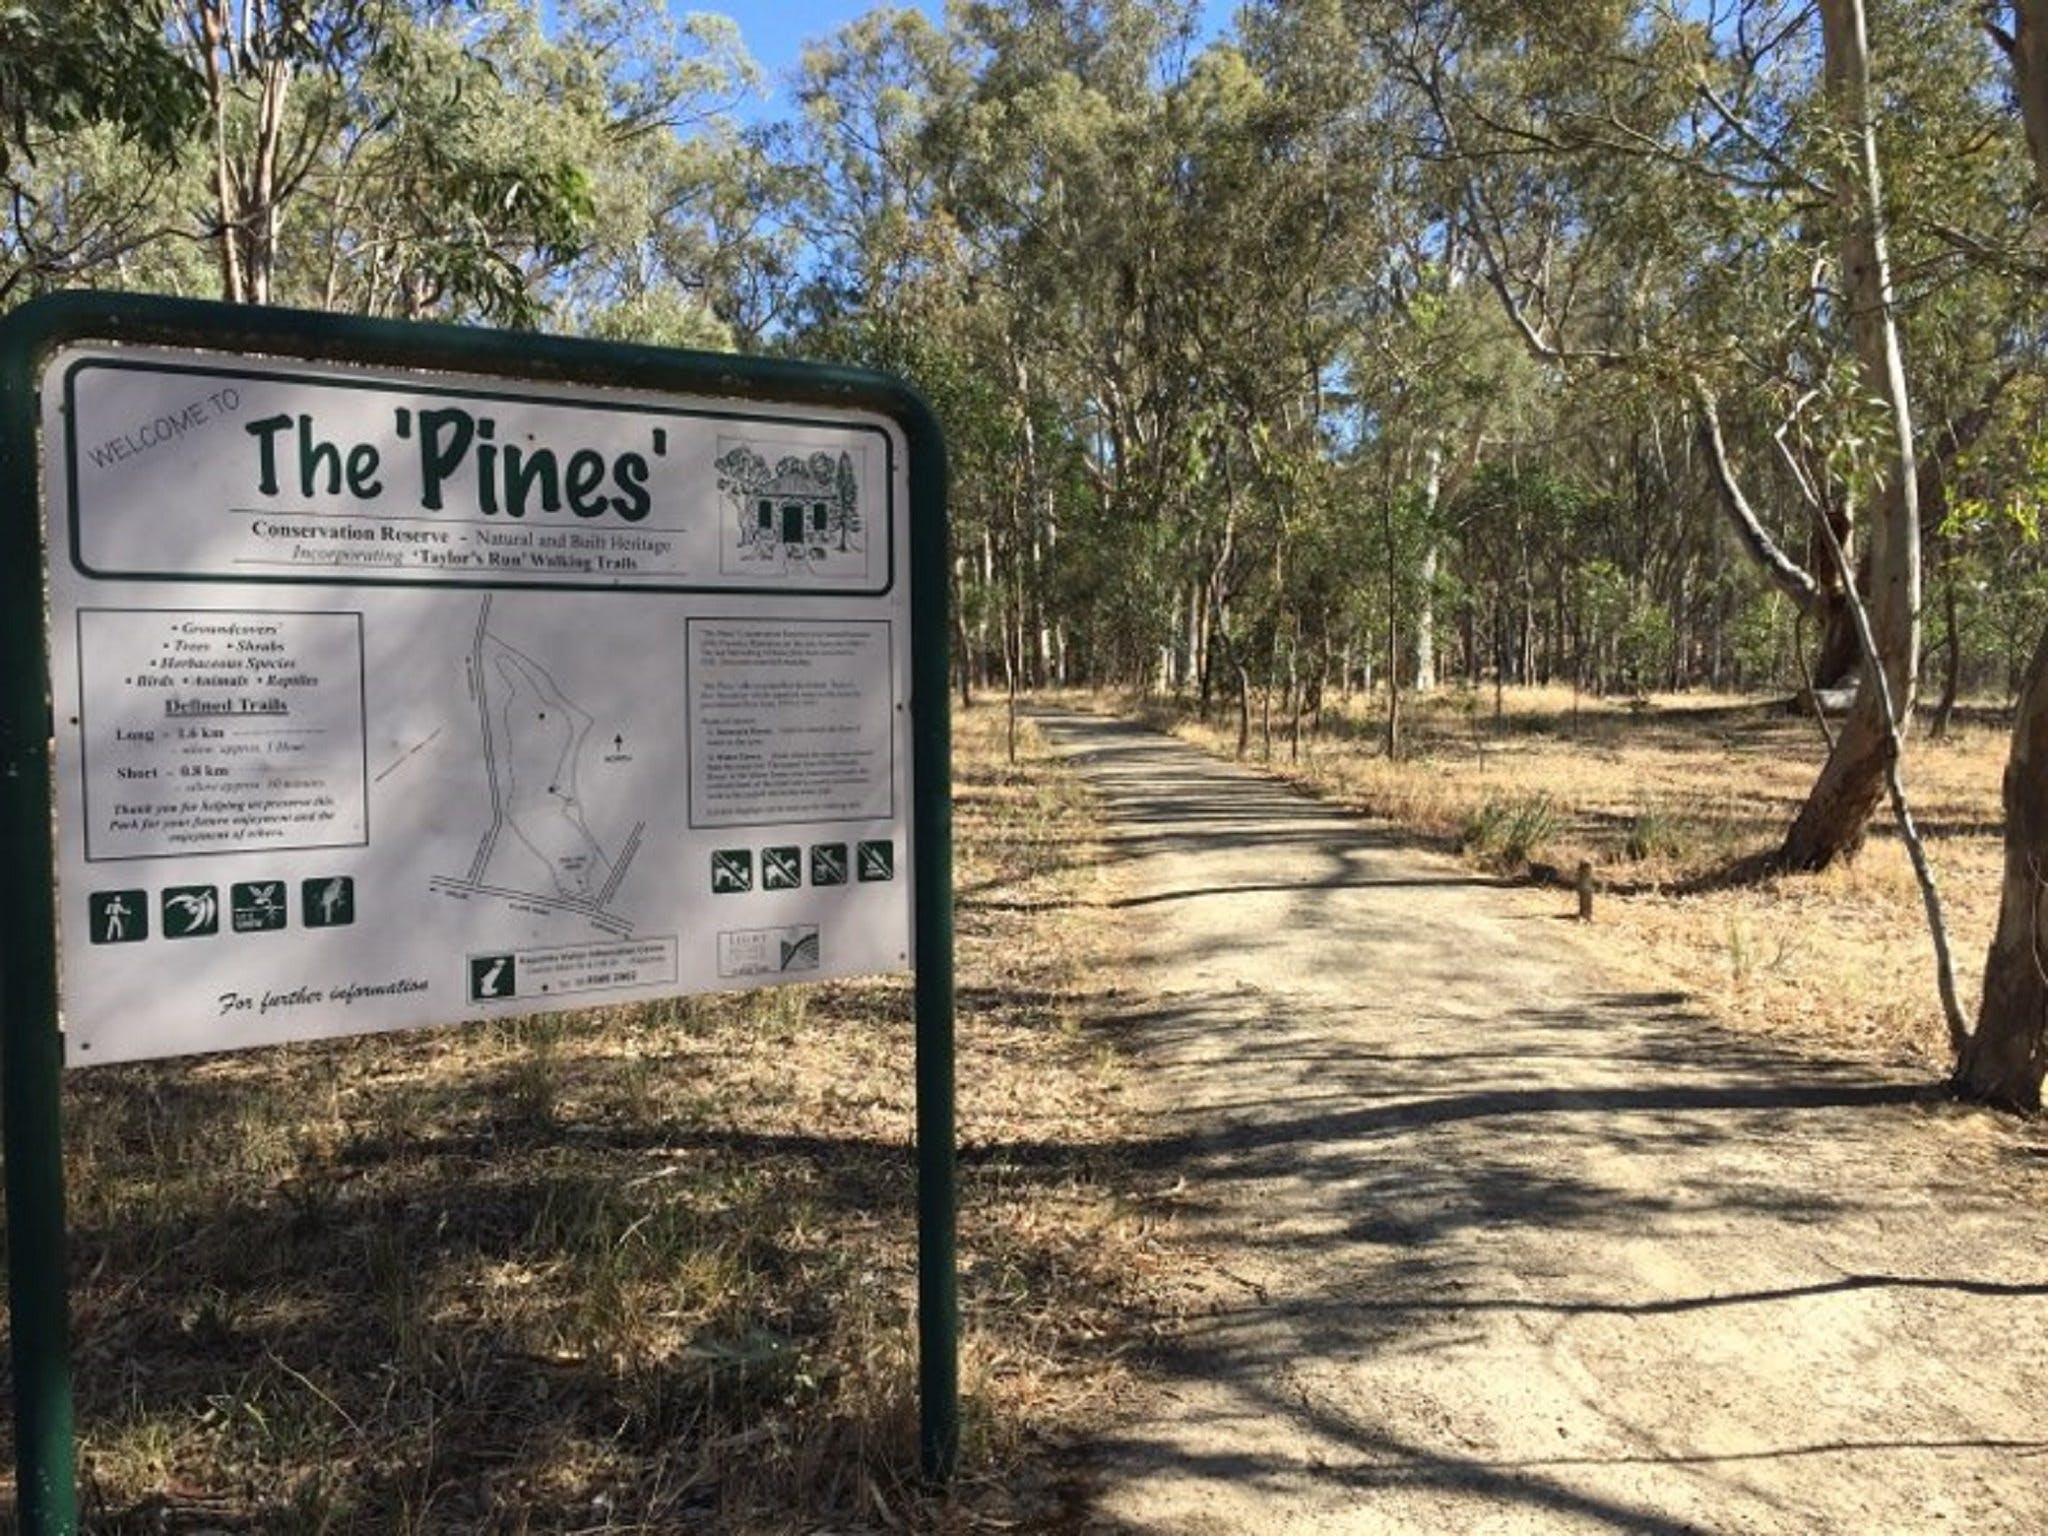 The Pines Conservation Reserve - VIC Tourism